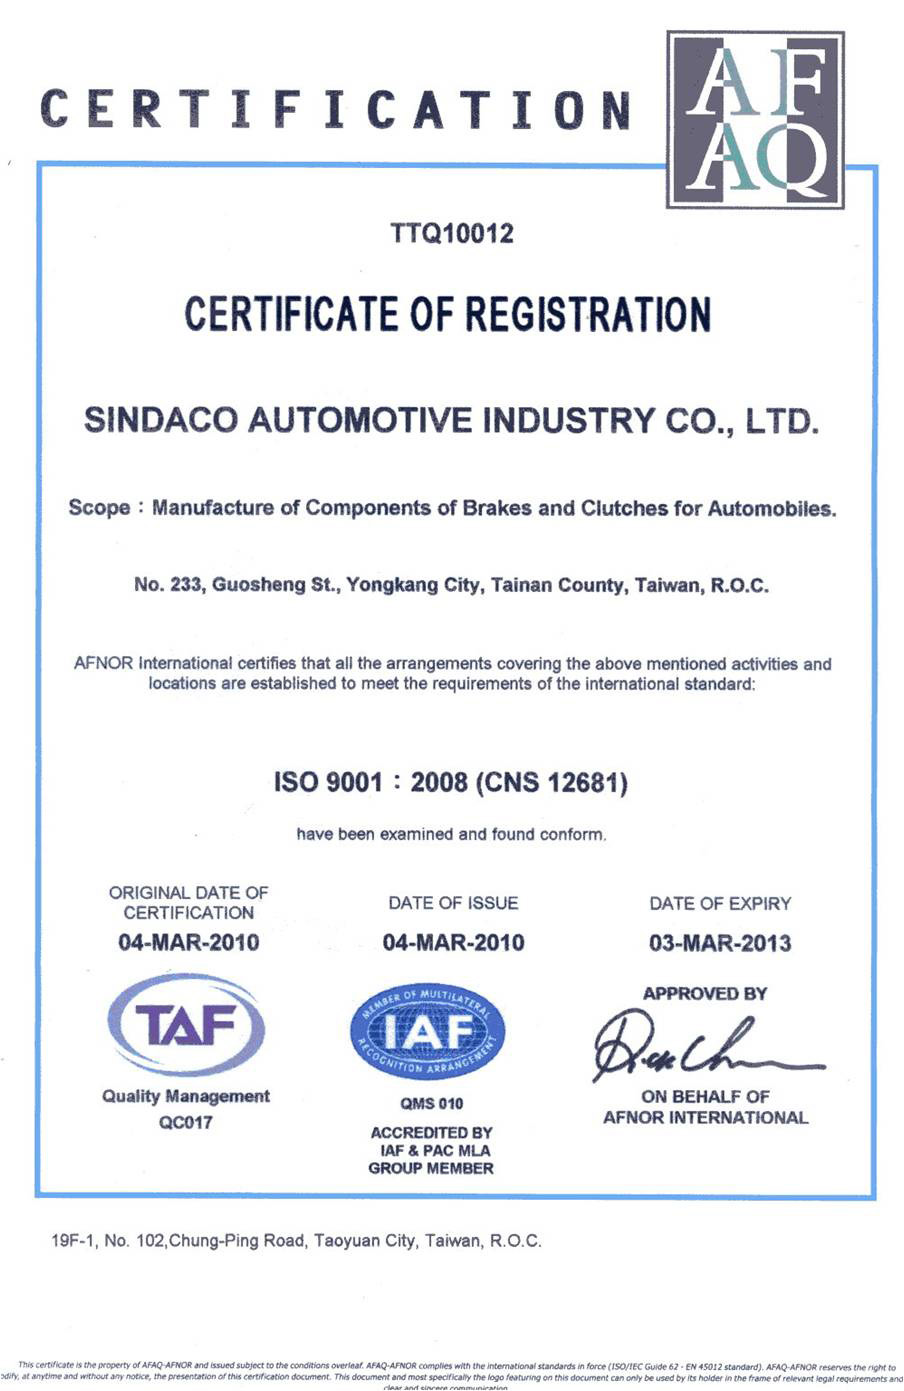 Sindaco automotive industry co ltd our motto there is a better way quality is the first the best salesman is good quality yadclub Choice Image